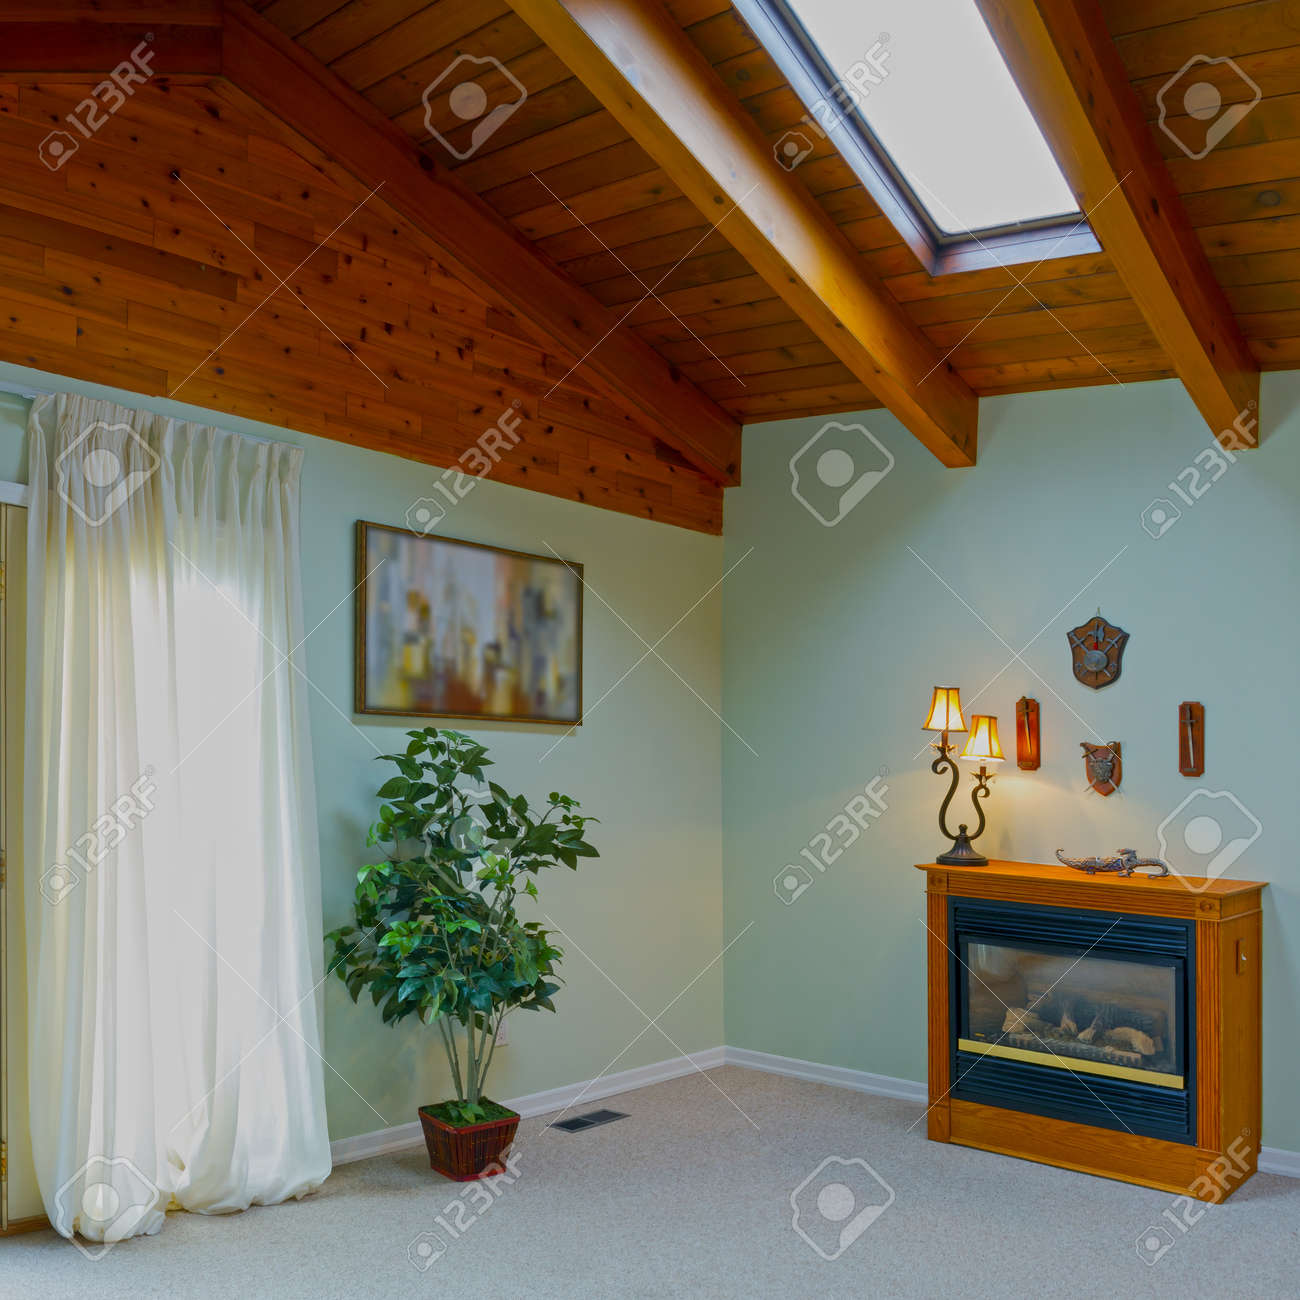 Interior design in a new house Stock Photo - 19001680